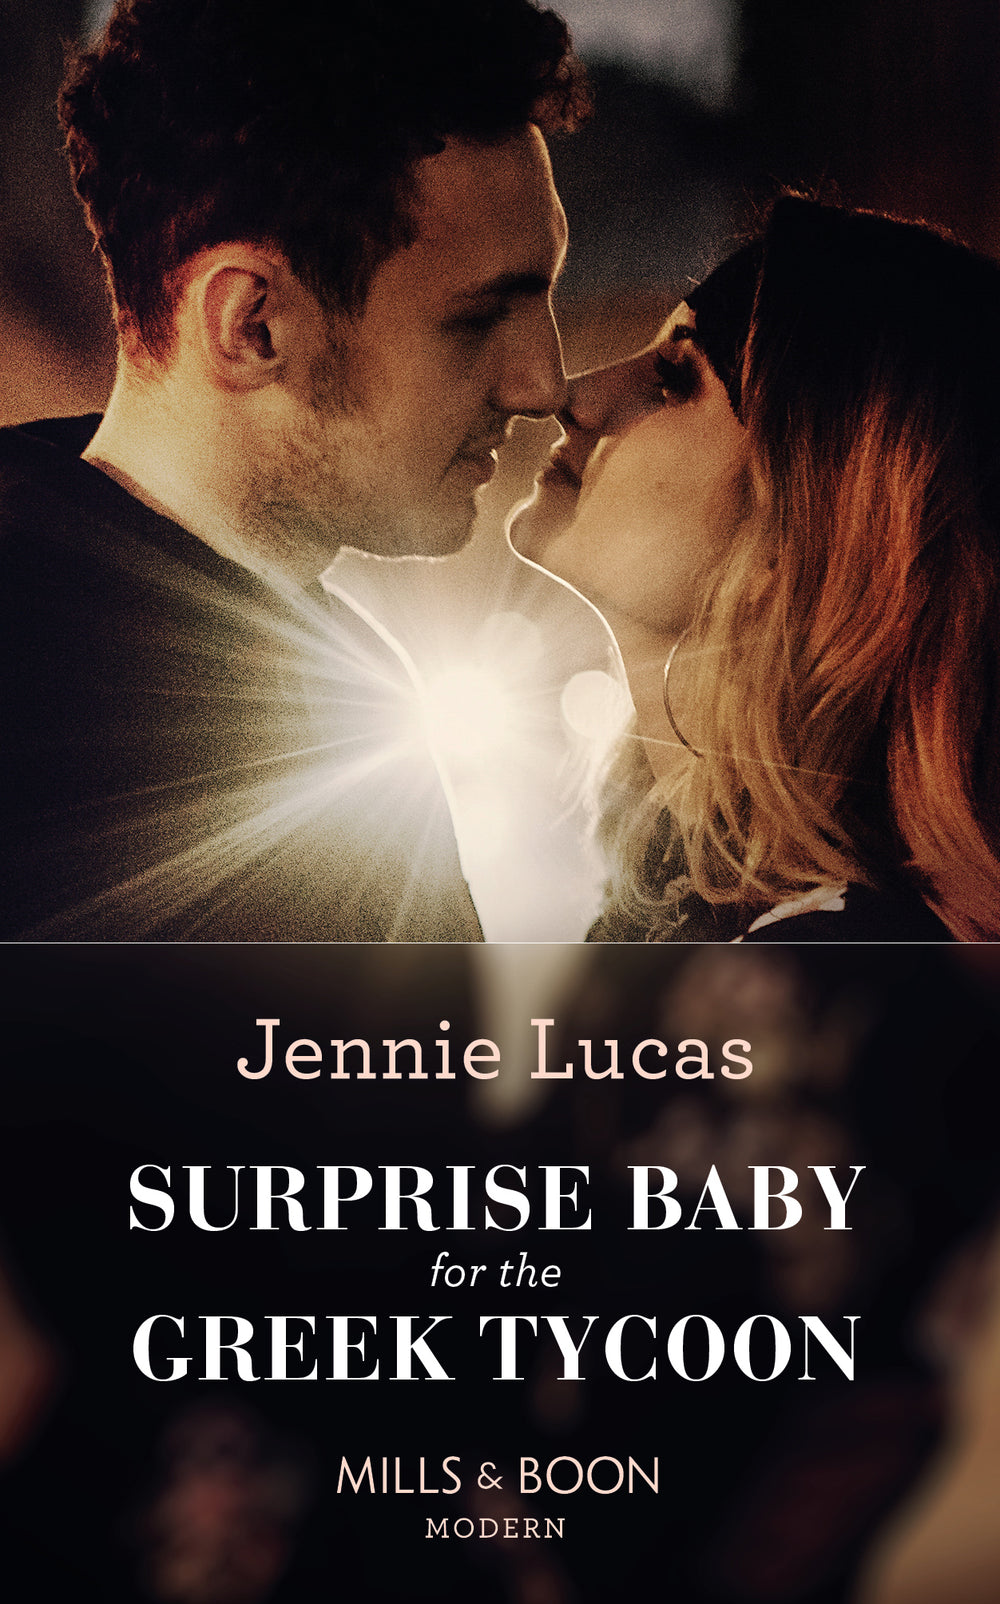 Surprise Baby for the Greek Tycoon - Chapter 17